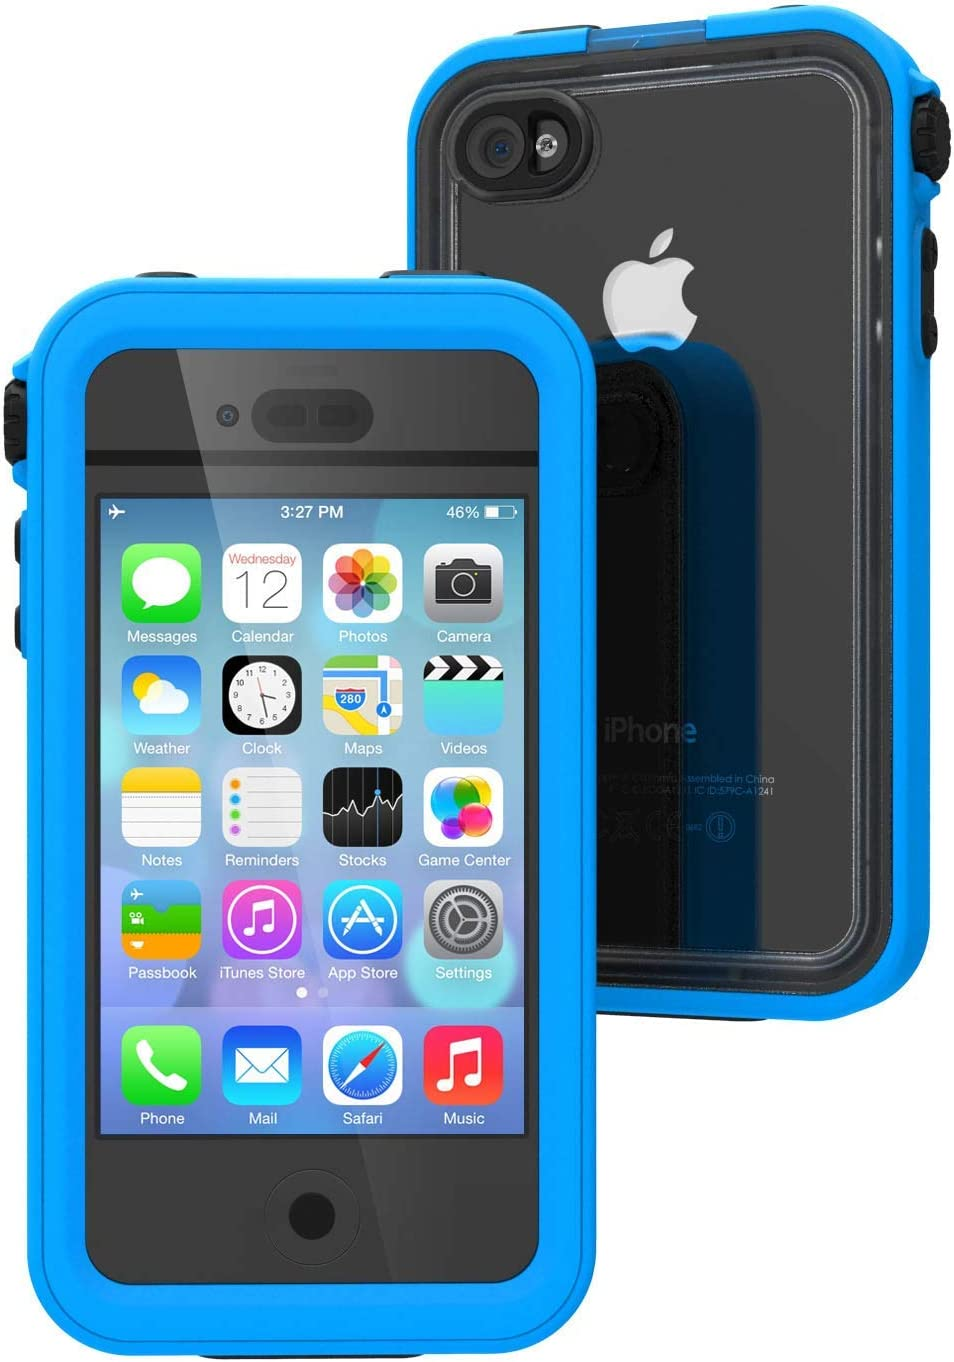 Catalyst Waterproof case for iPhone 4 / 4s, High Touch Sensitivity ID, Military Grade Drop and Shock Proof Premium Material Quality, Slim Design, Pacific Blue